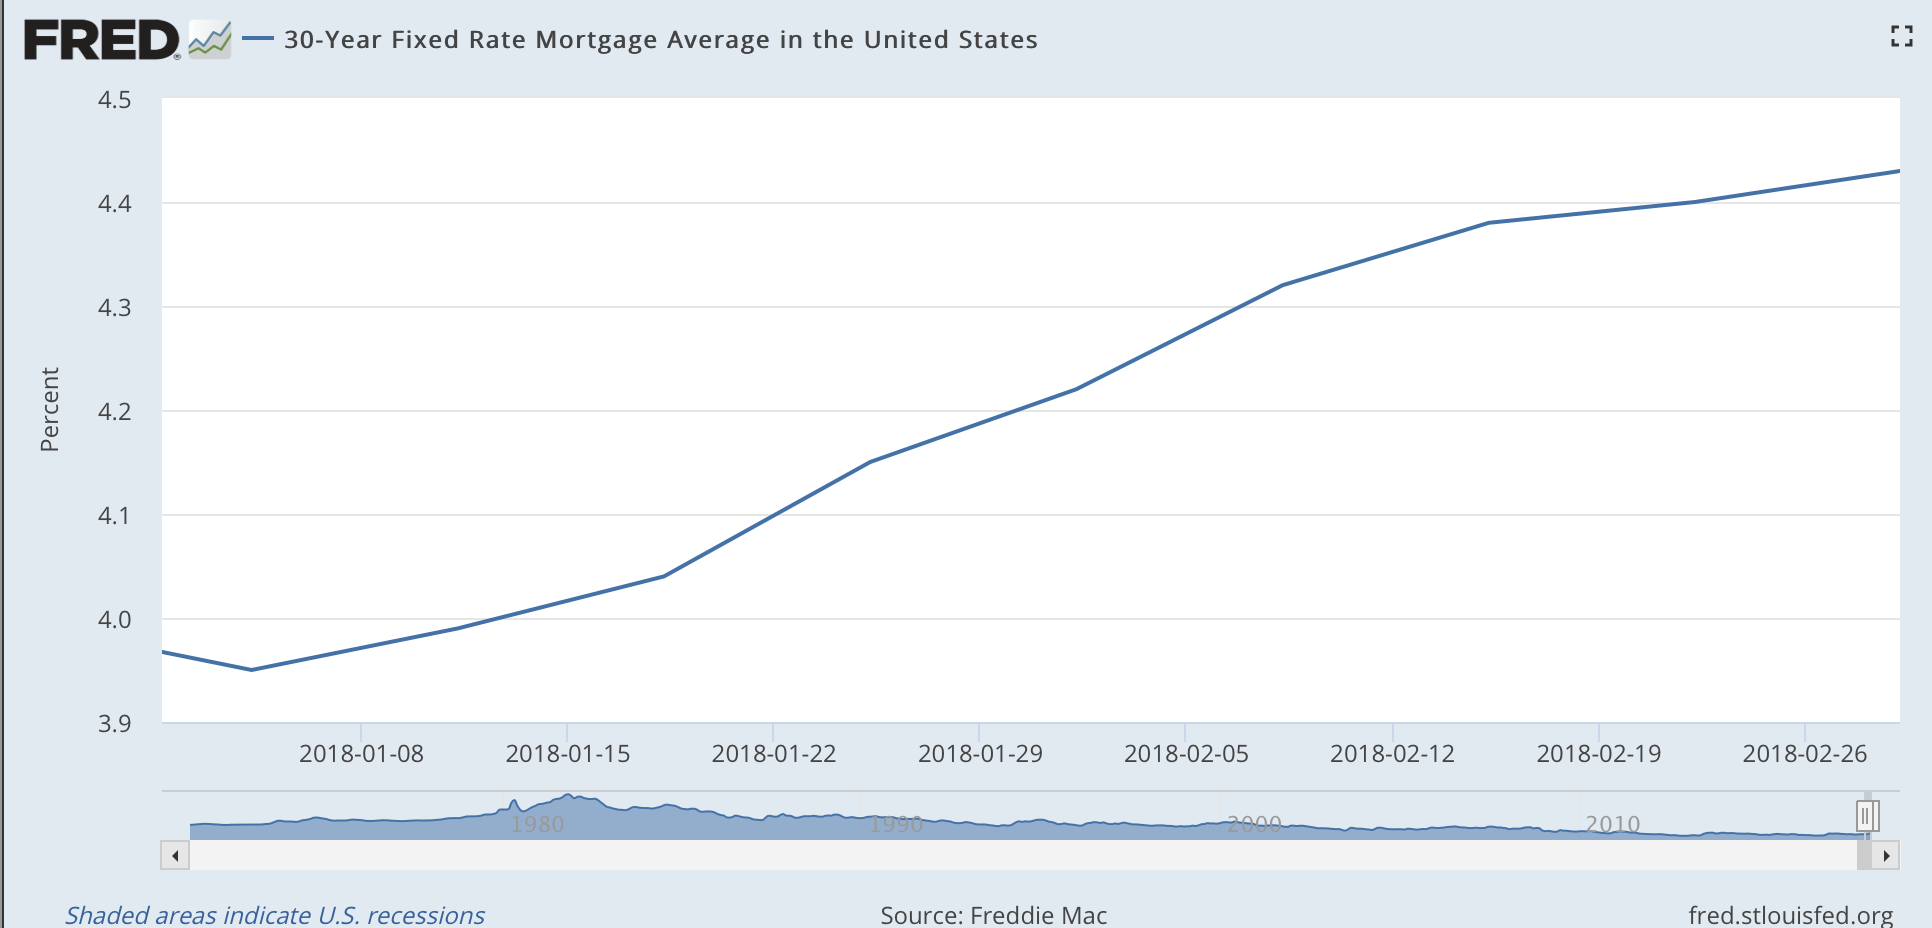 2018 FRED 30-year fixed mortgage rate average in the united states